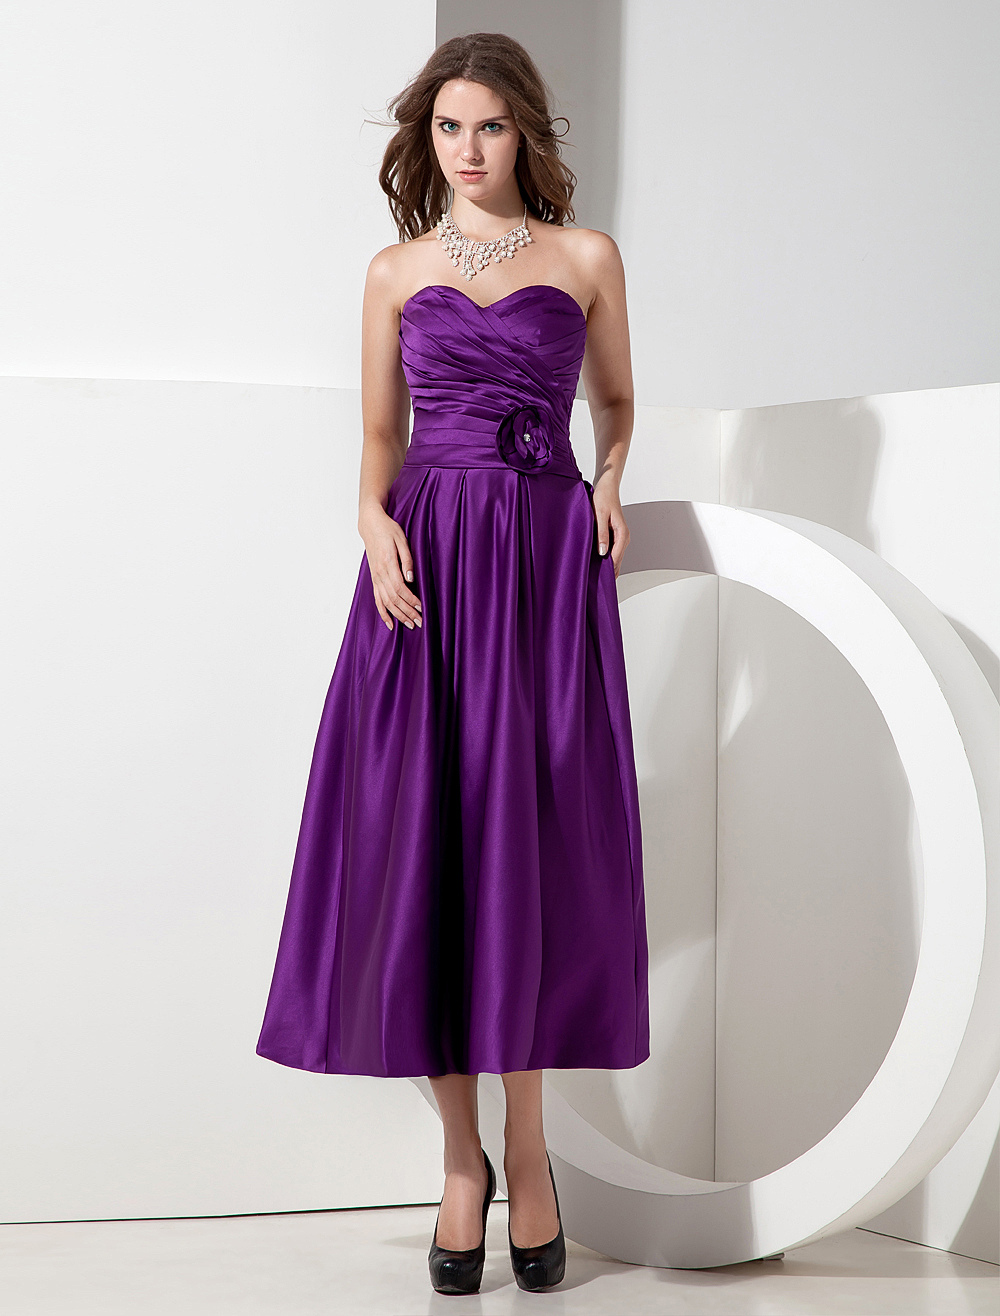 A-line Grape Satin Flower Sweetheart Neck Bridesmaid Dress